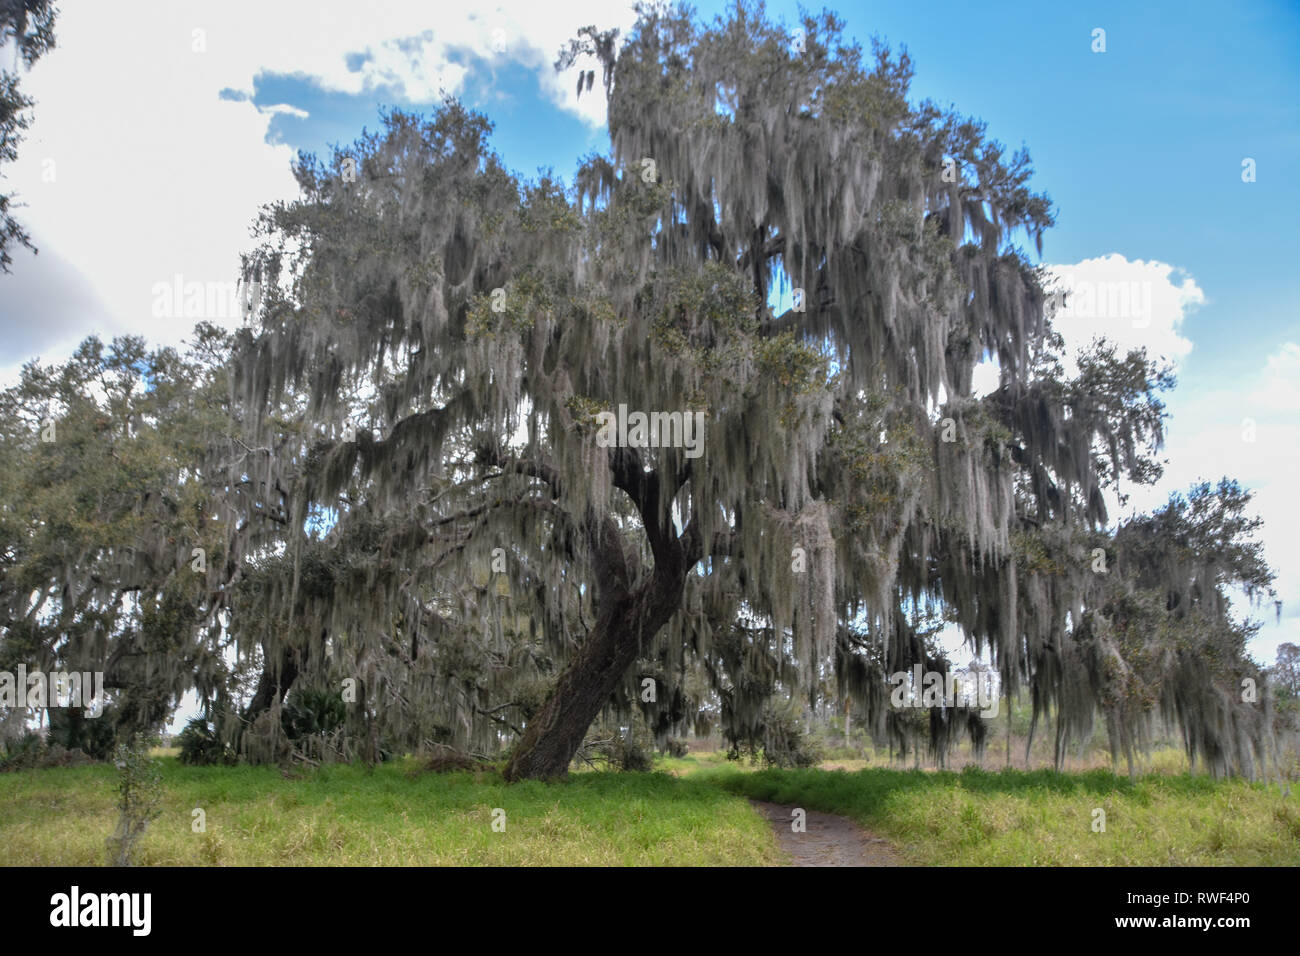 a shady oak to rest under at Circle B Ranch - Stock Image